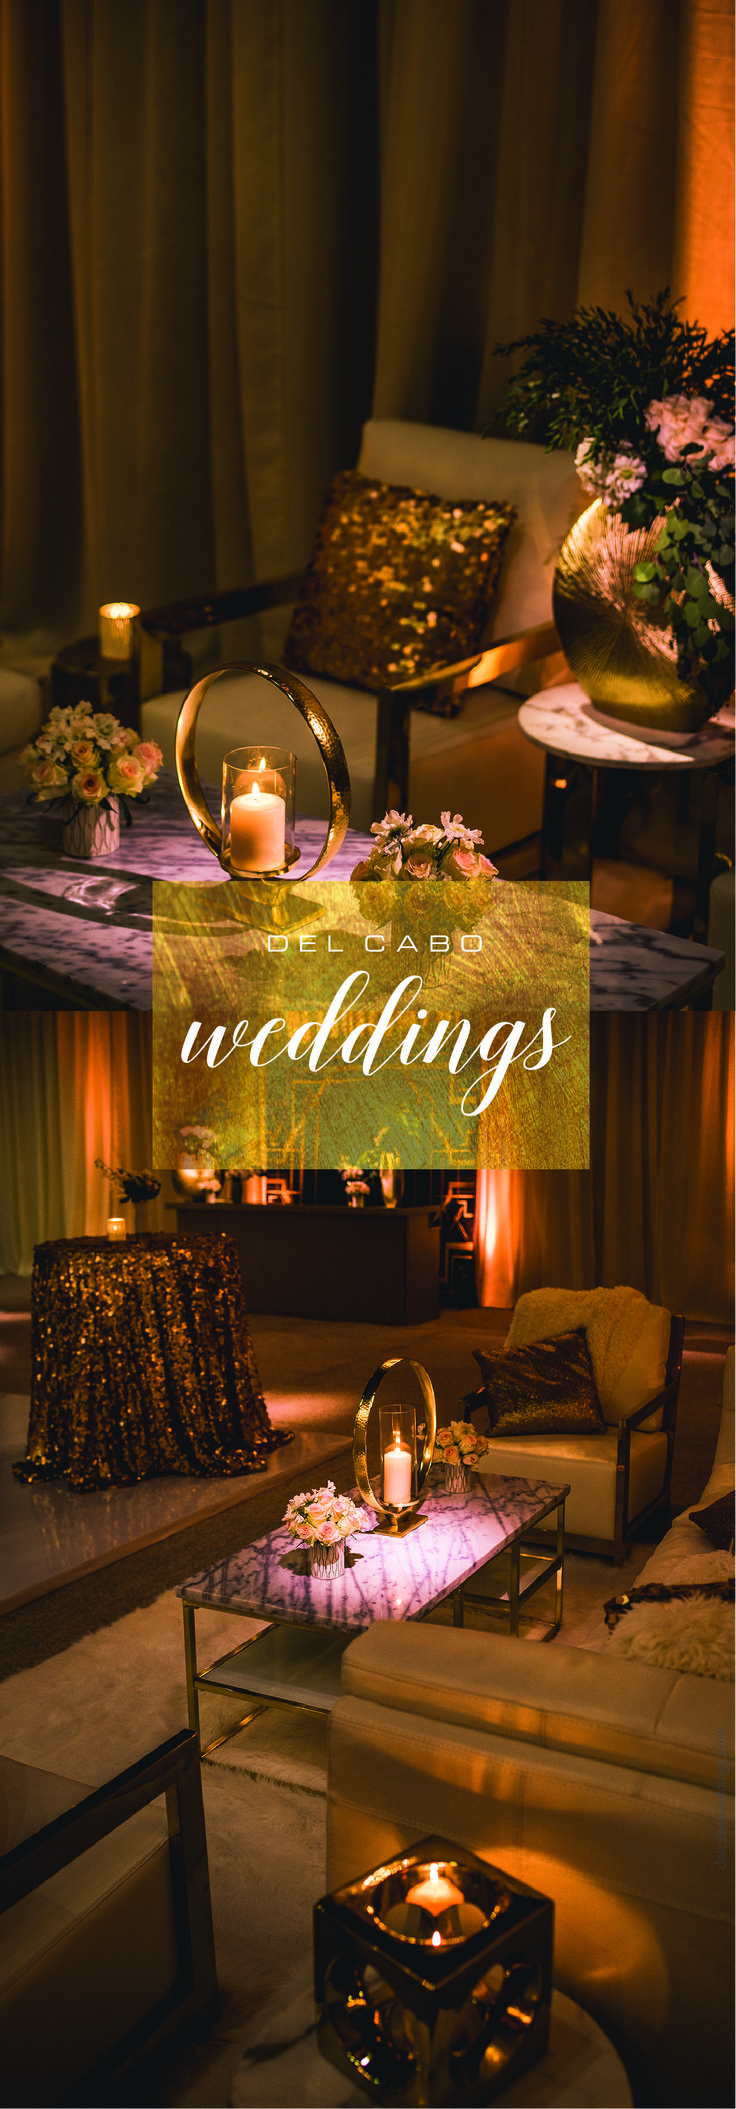 Del Cabo Weddings is a wedding planning design firm that will plan, design and execute the destination wedding you always dreamed of!